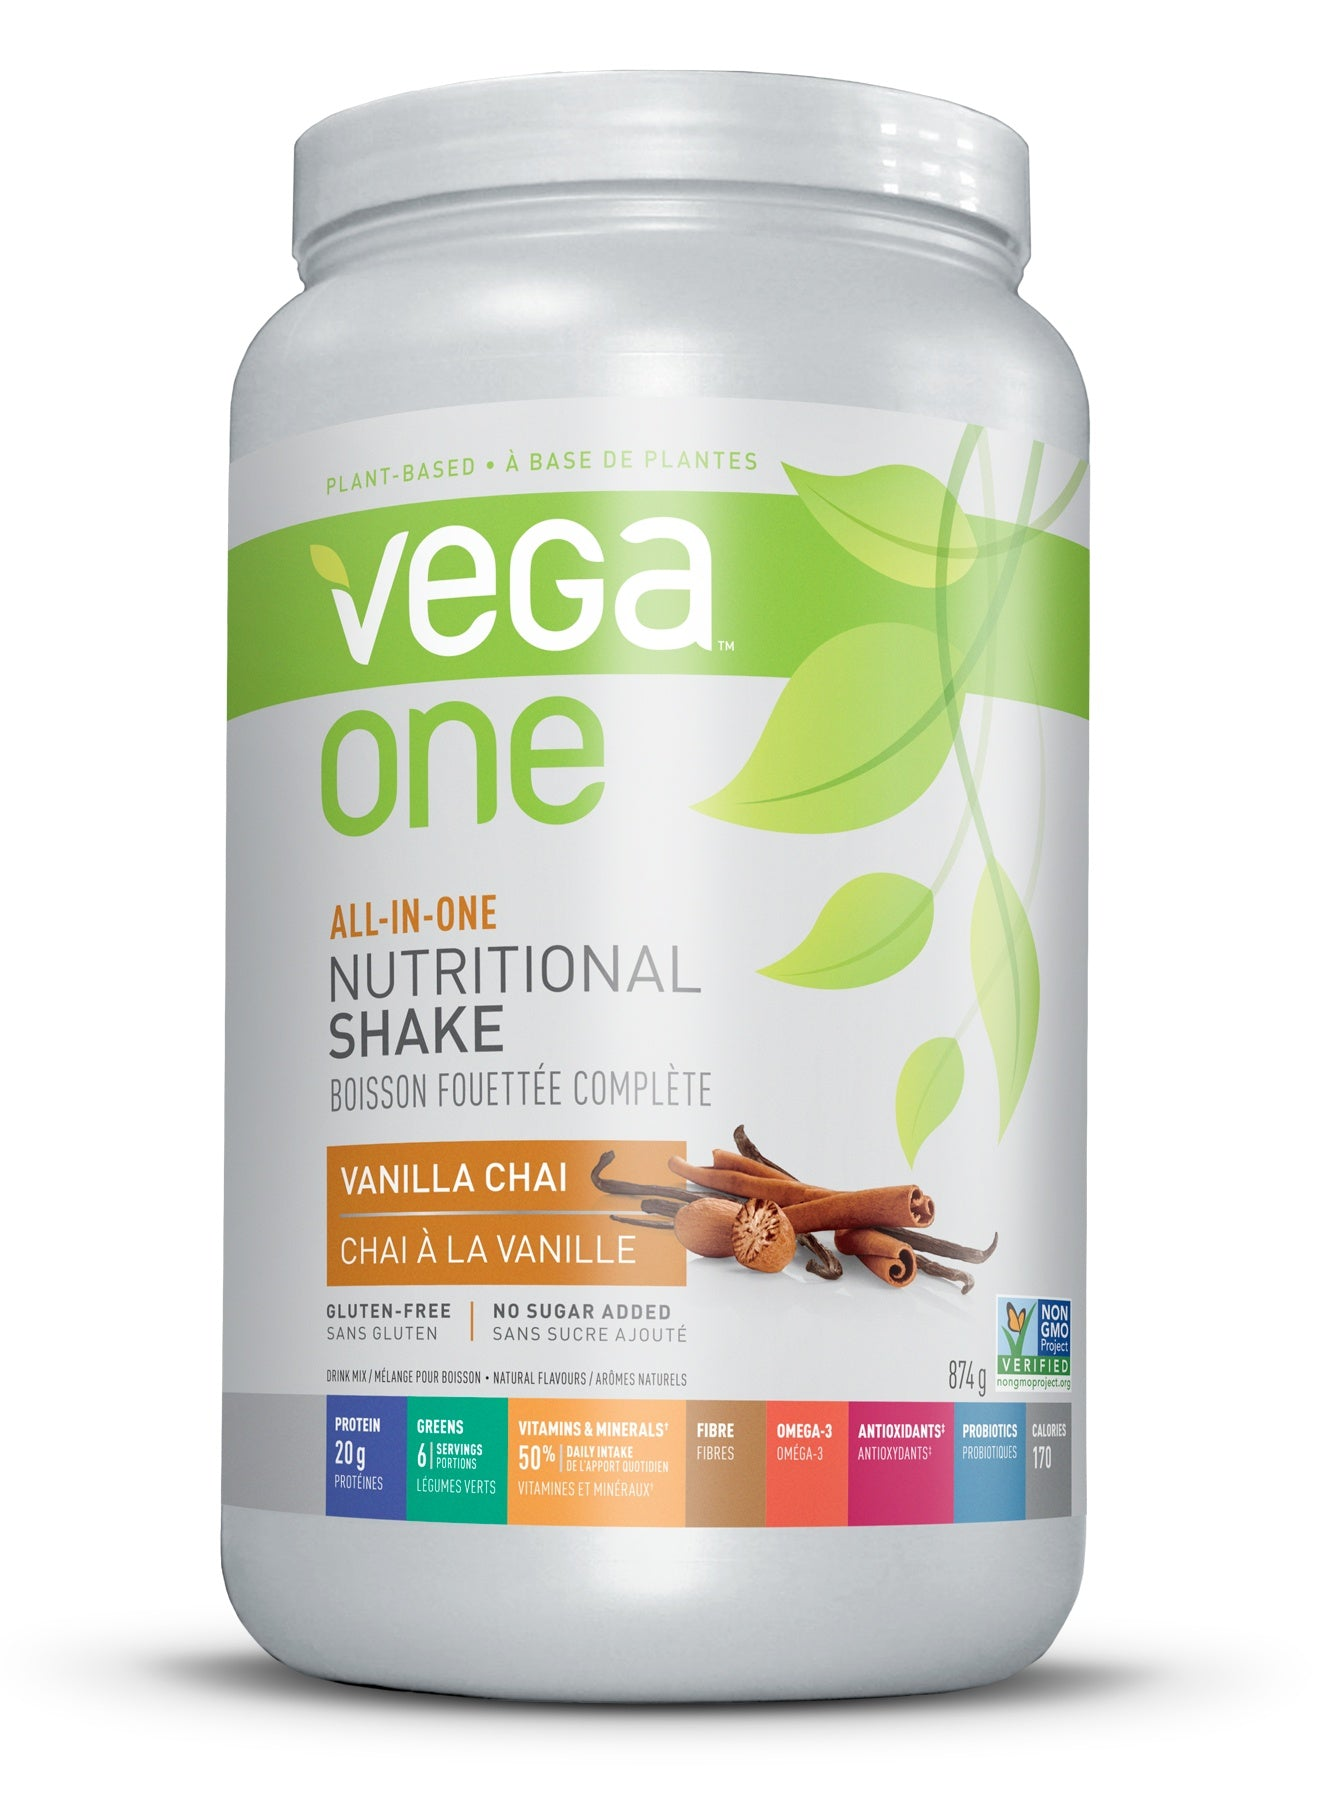 Supplements & Vitamins - Vega - Vanilla Chai Nutritional Shake, 874g